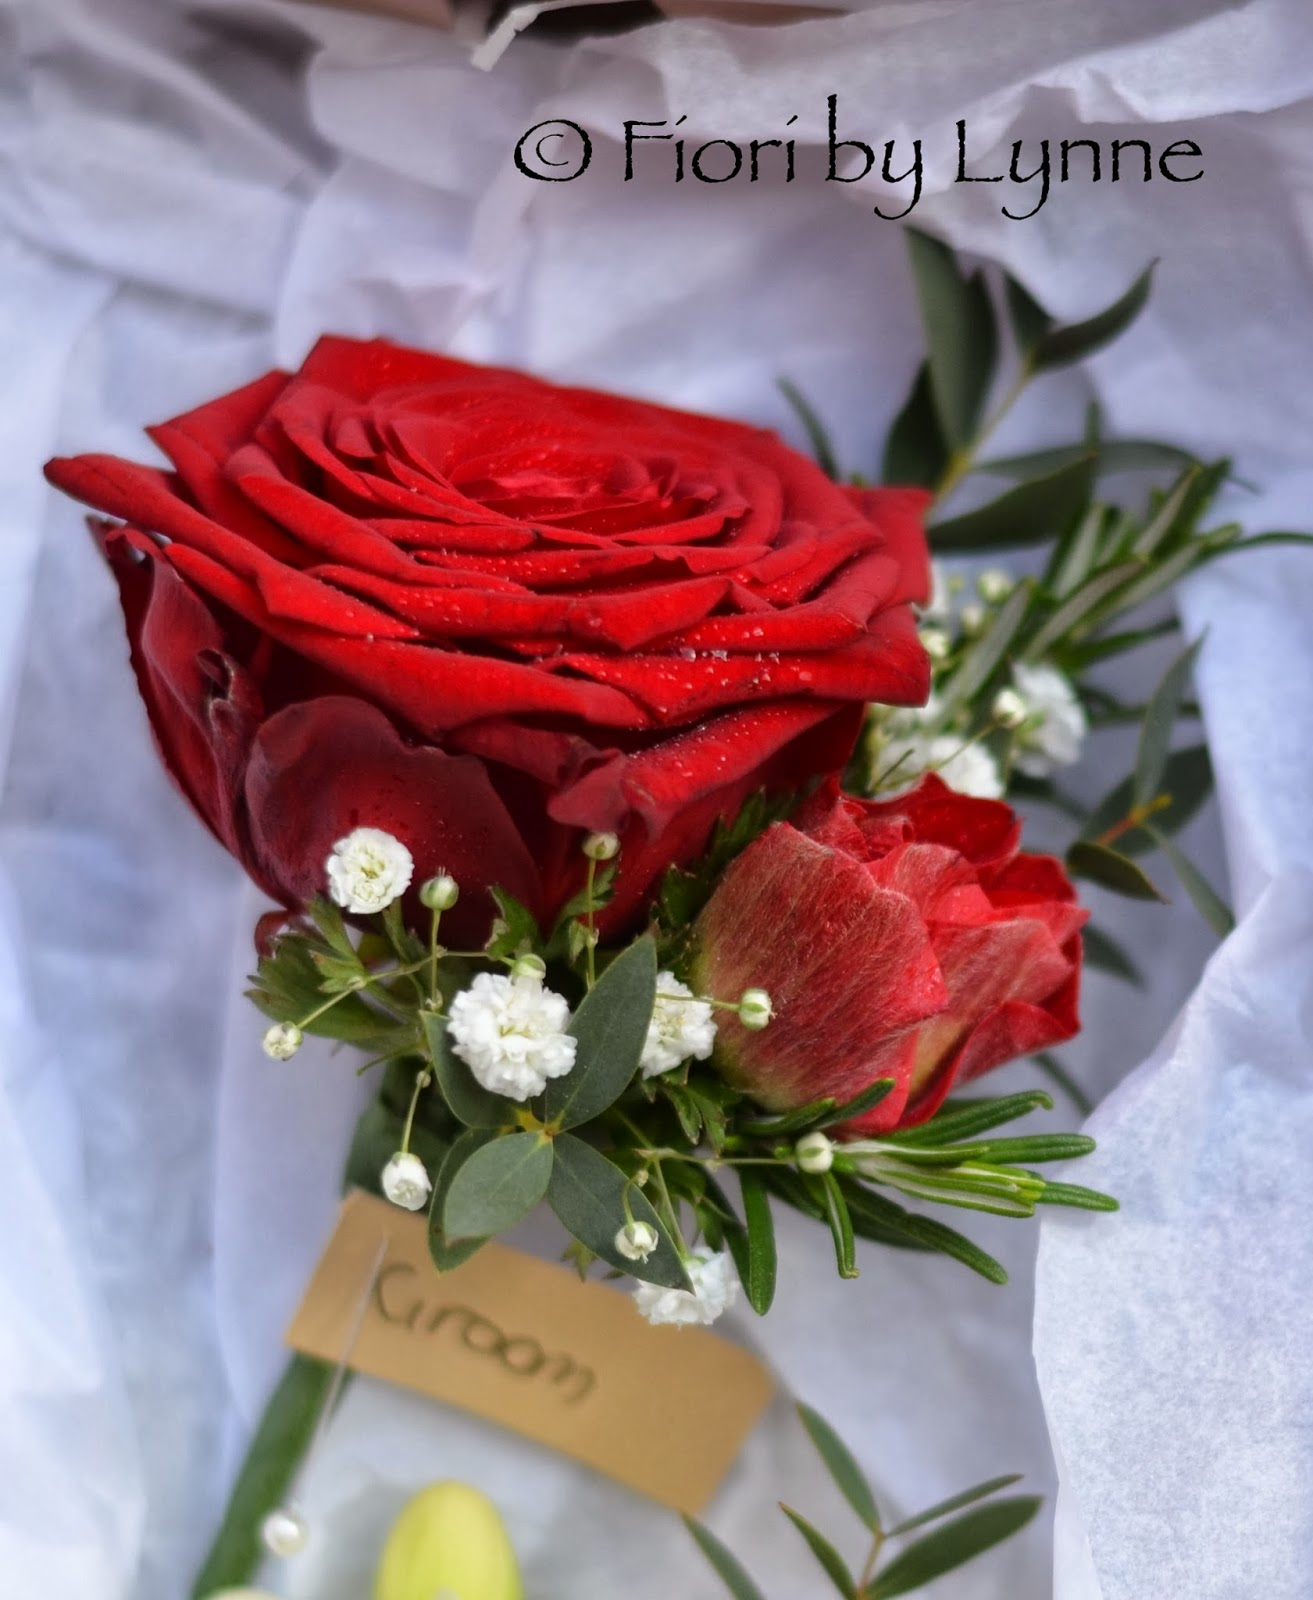 Wedding Flowers Blog: Ben & Nicky\'s Red and White Wedding Flowers ...